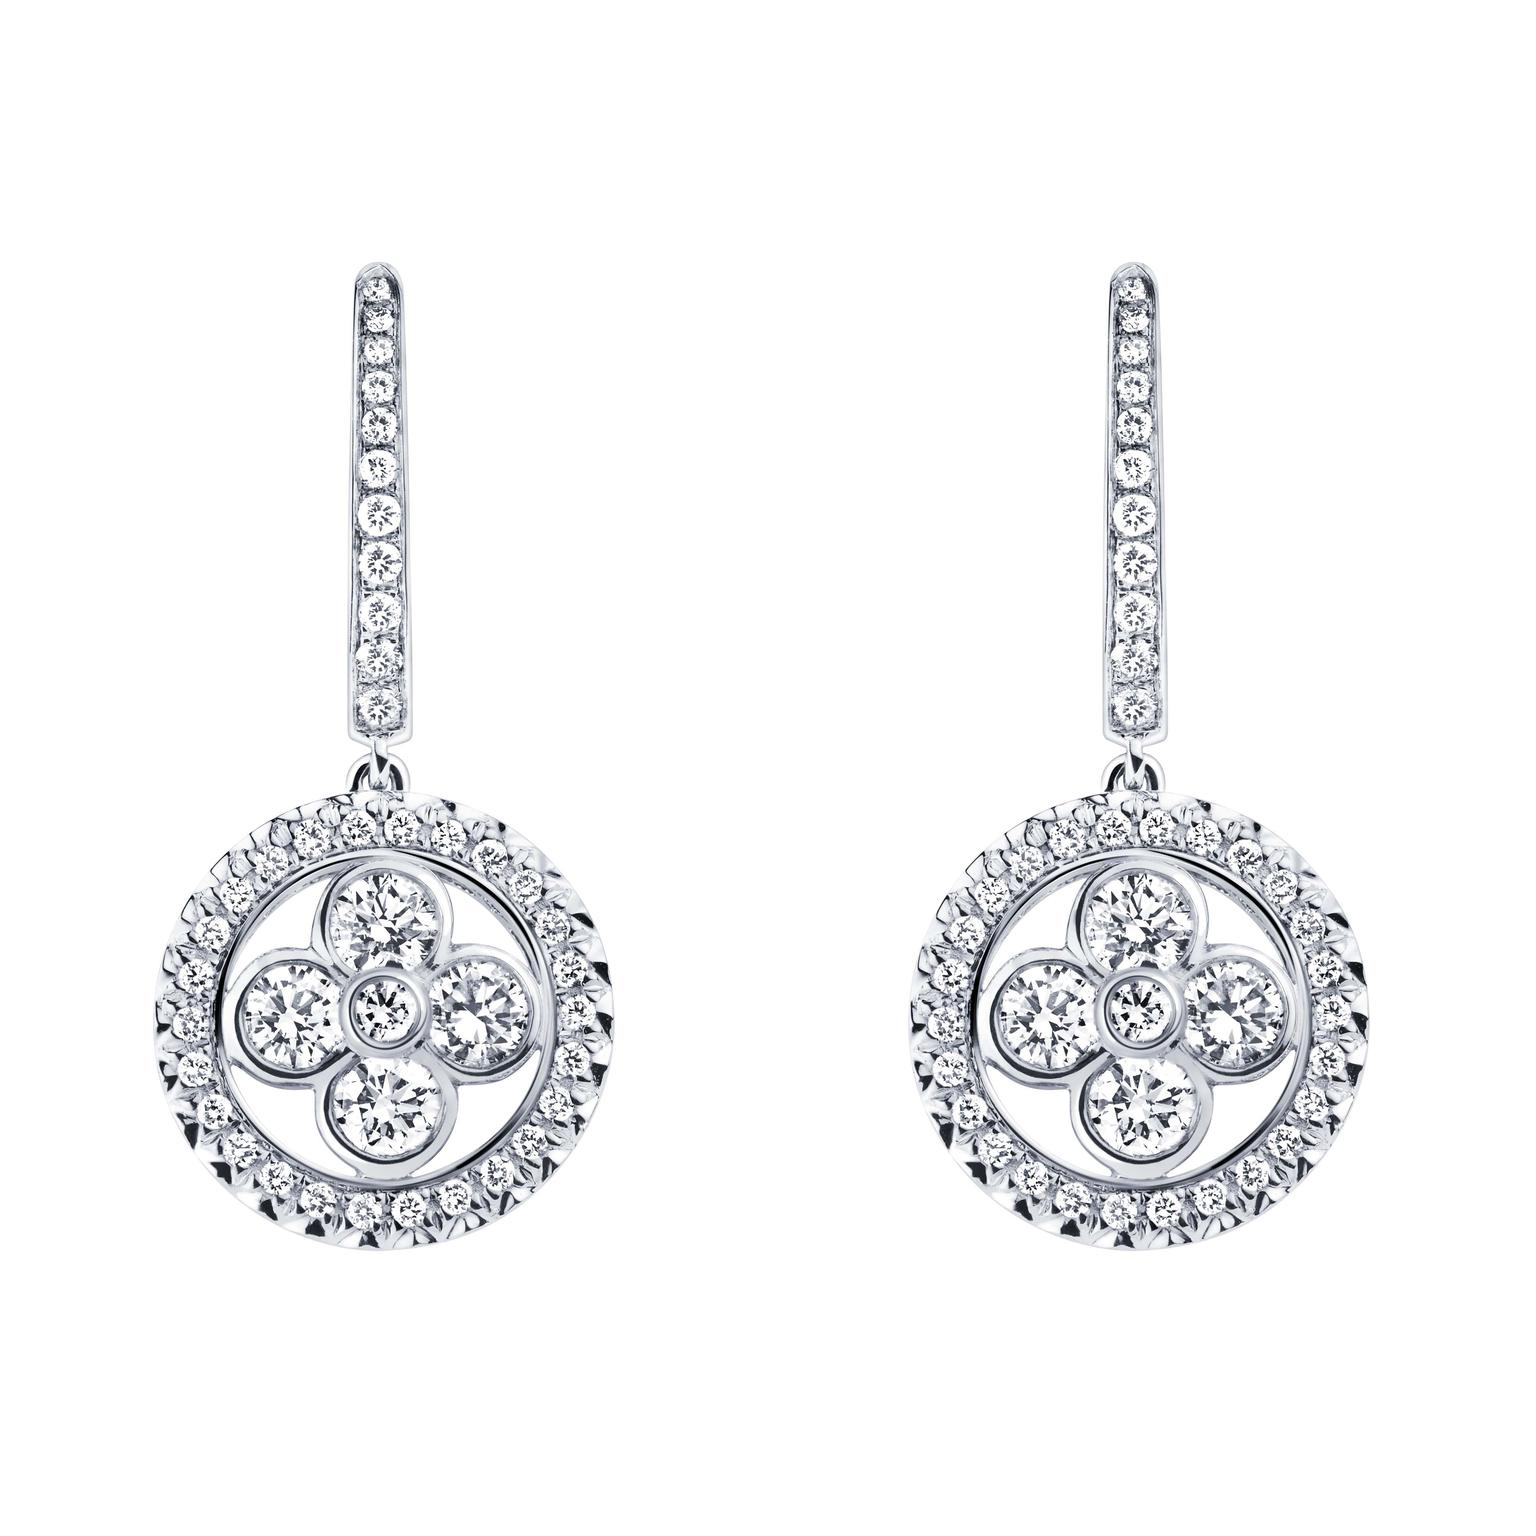 Louis Vuitton Monogram Sun earrings in white gold and diamonds.